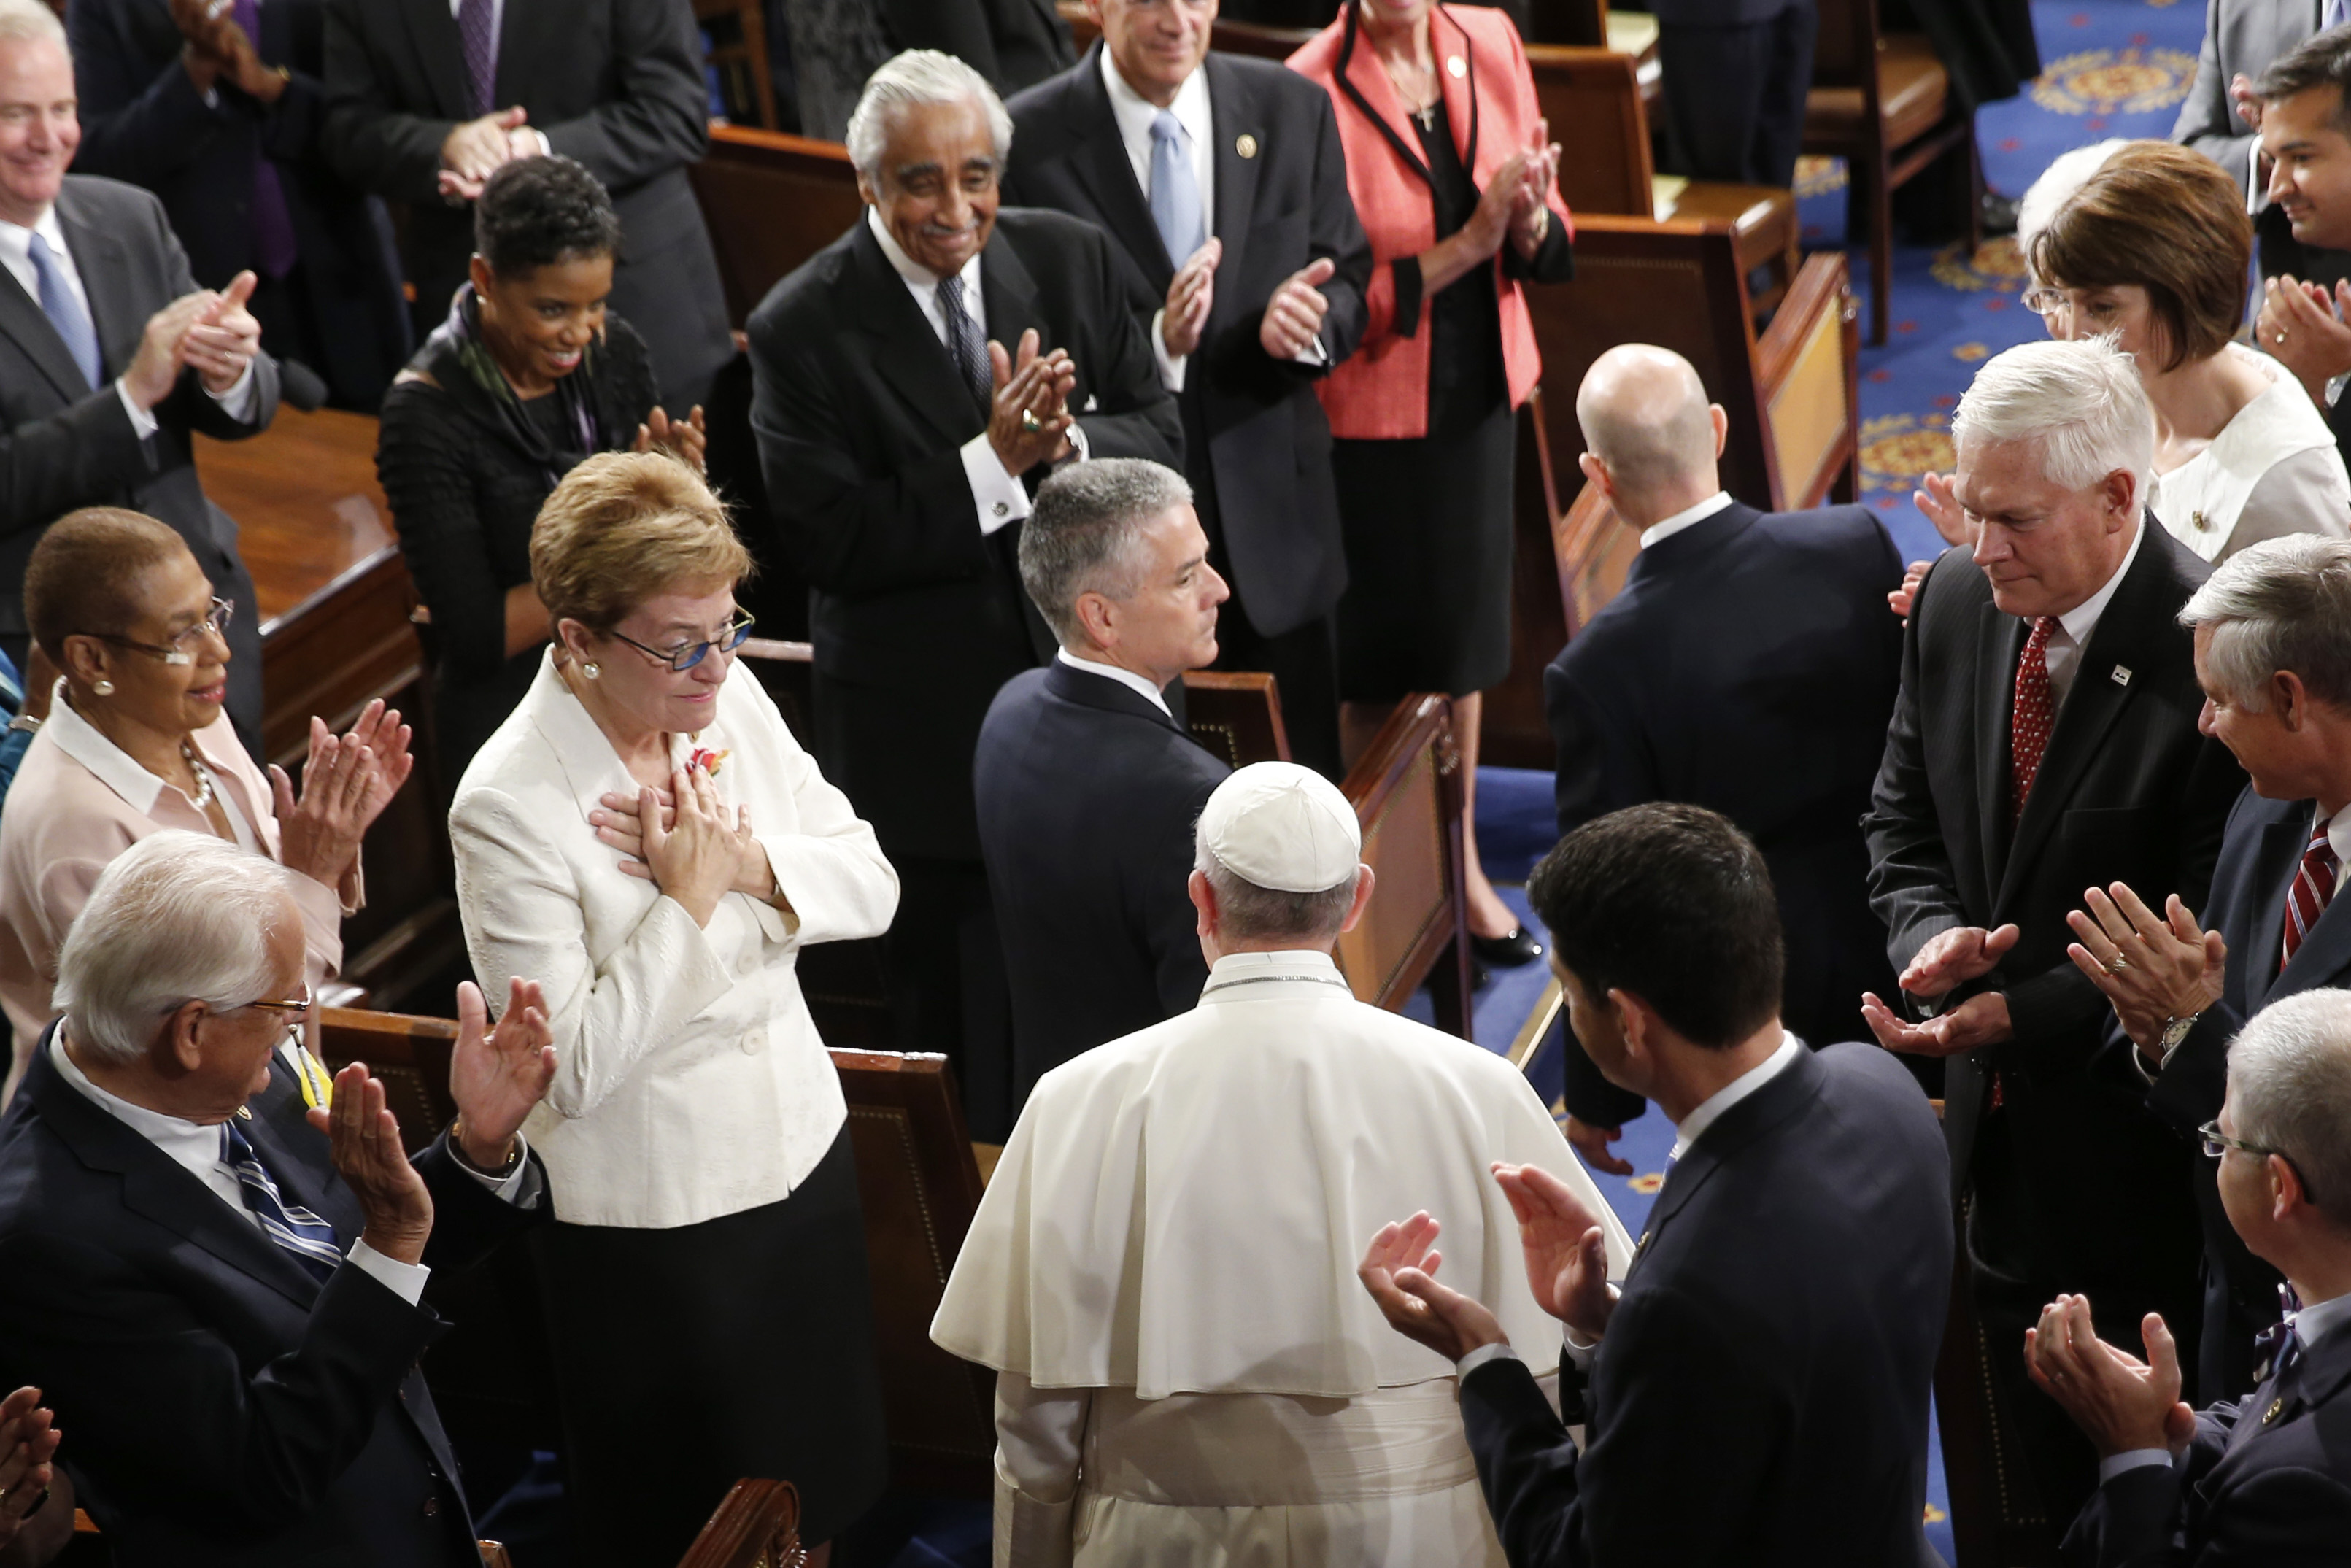 Pope Francis challenges Congress to heal world's 'open wounds' - The ...